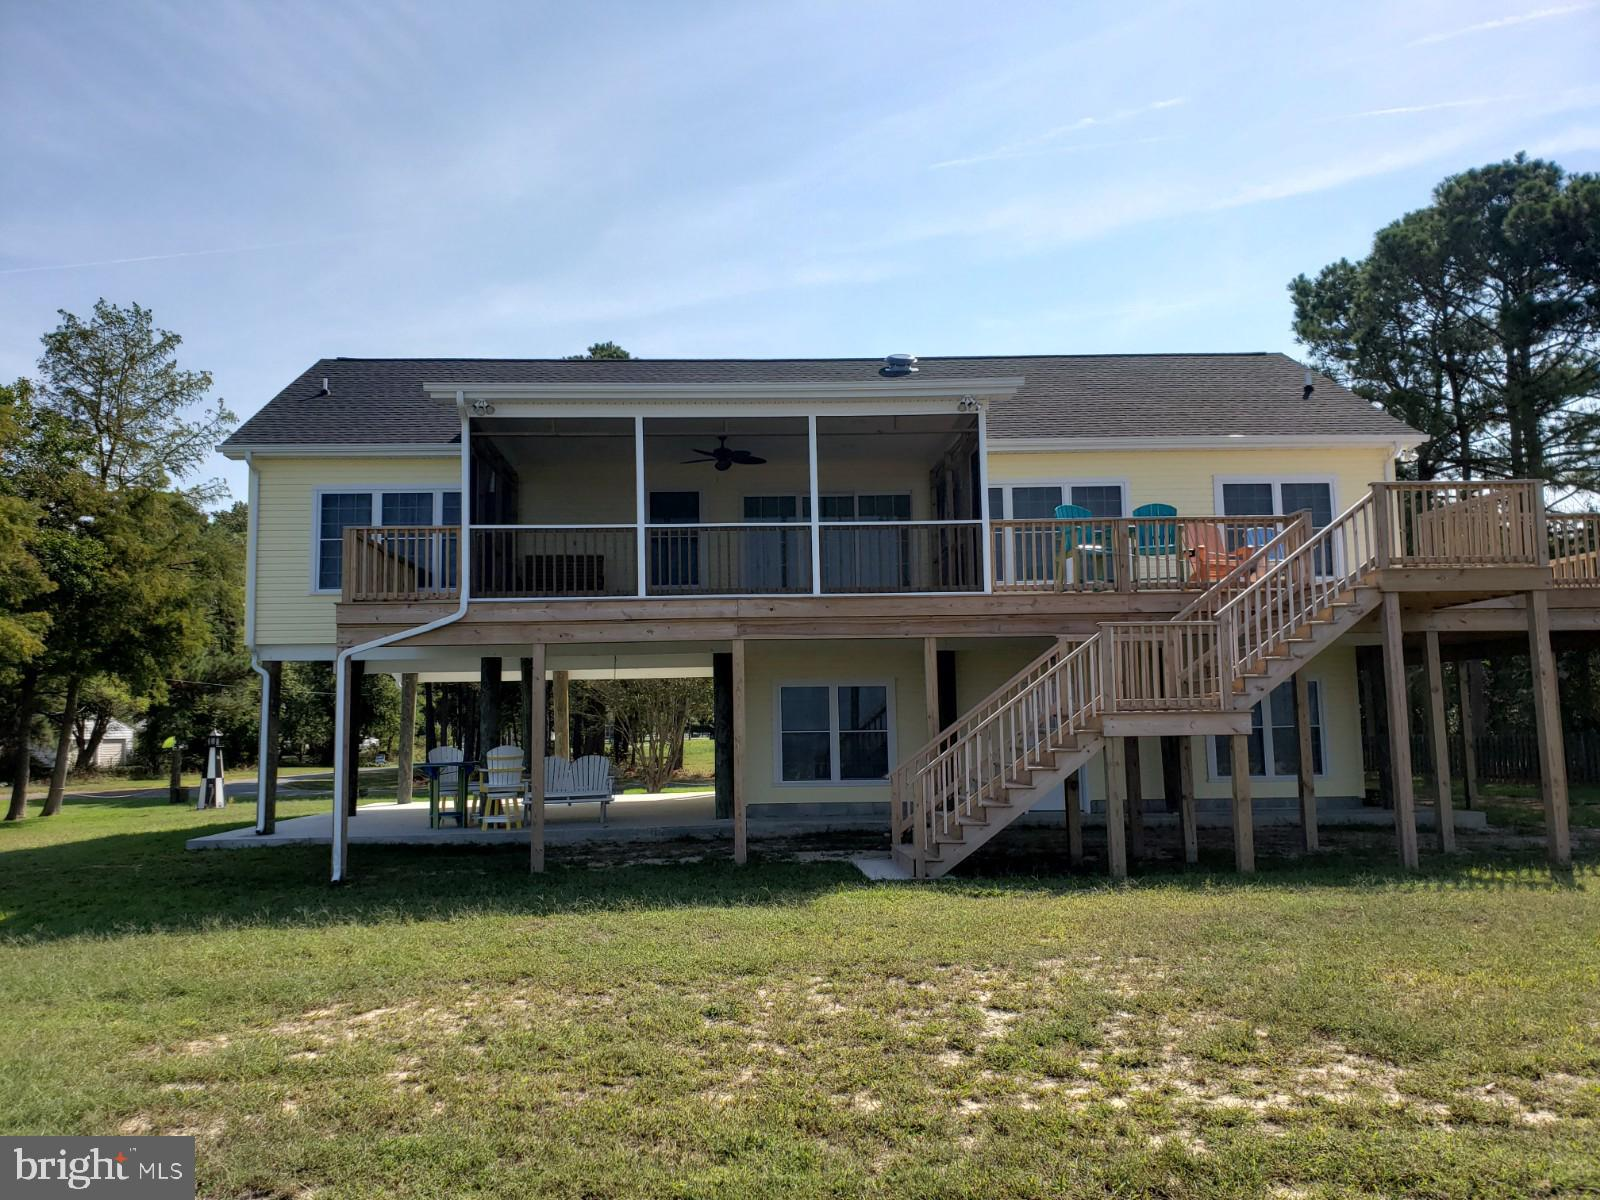 23350 KEEN ROAD, DEAL ISLAND, MD 21821